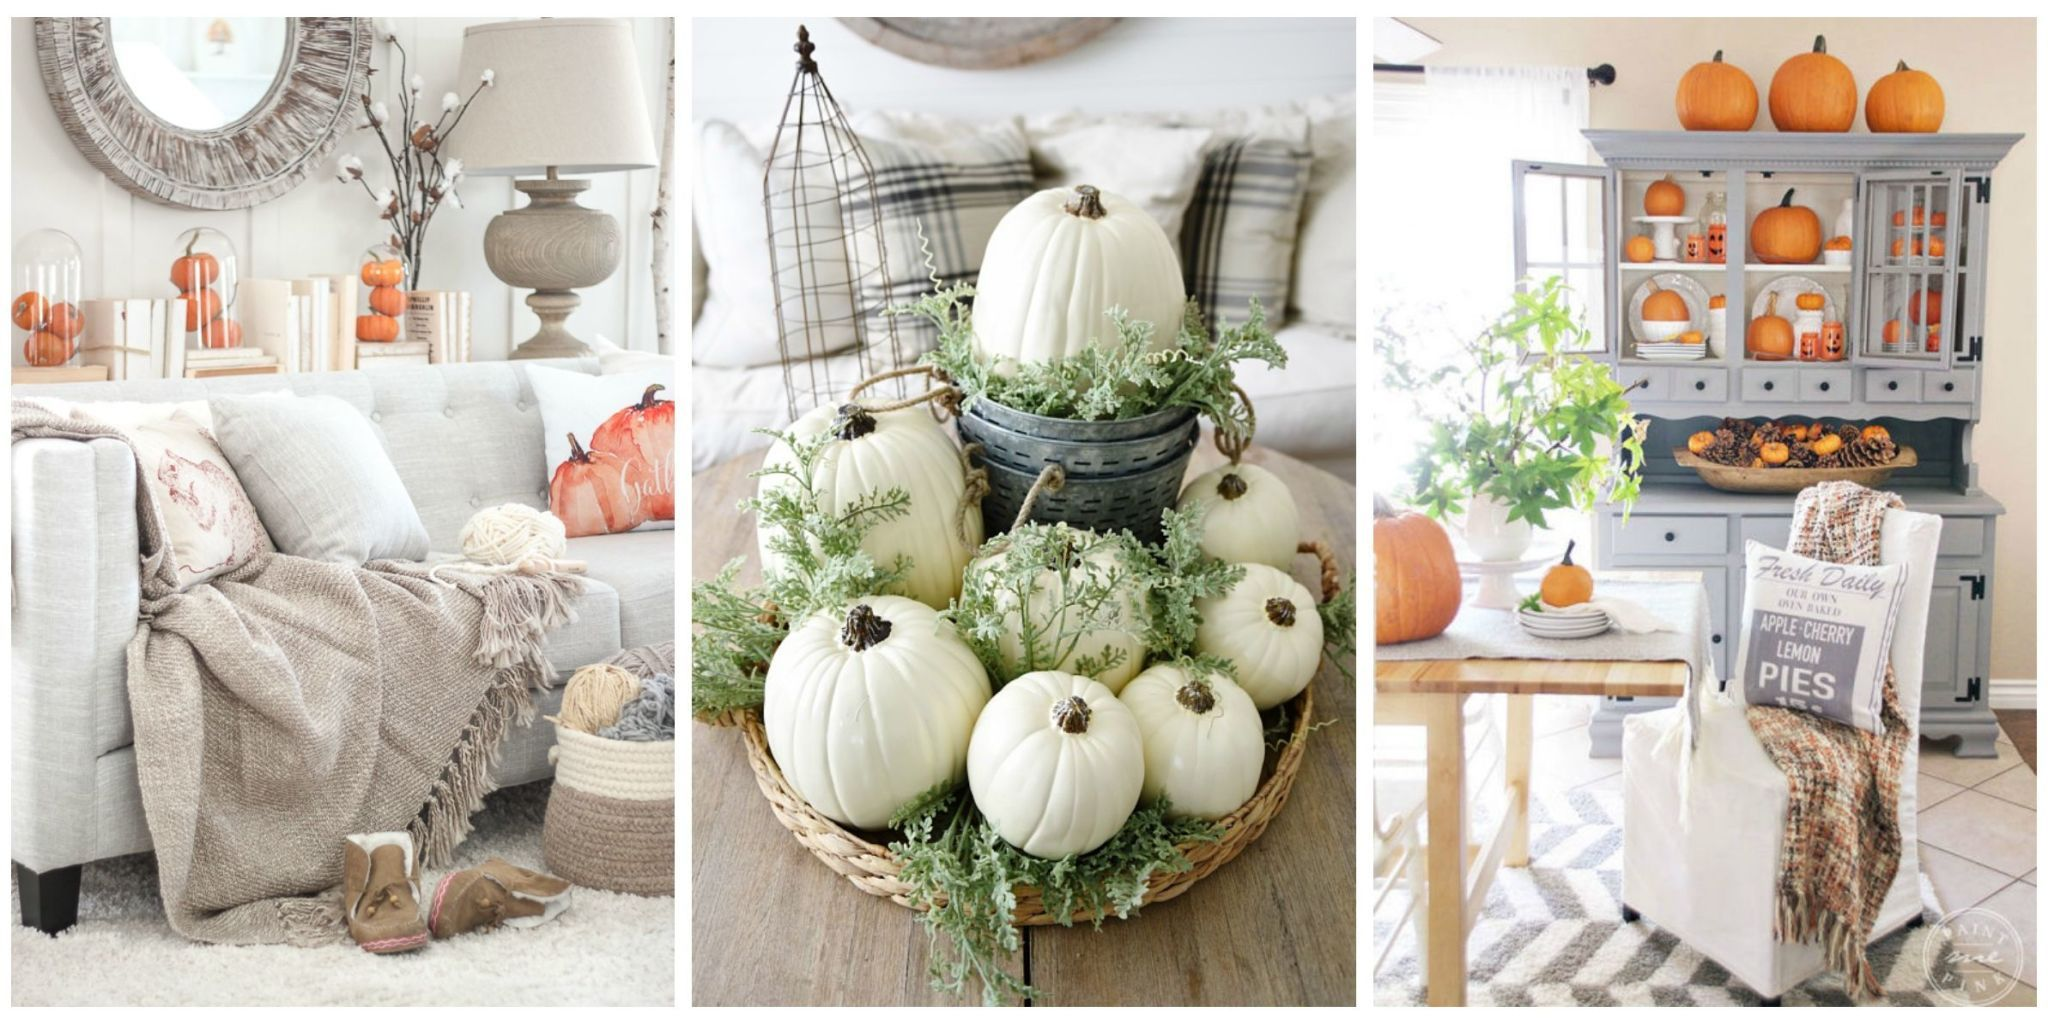 Donu0027t Stop At Simply Placing A Pumpkin On Your Porch This Seasonu2014use This  Fall Staple To Give The Rest Of Your Home A Seasonal Update, Too.